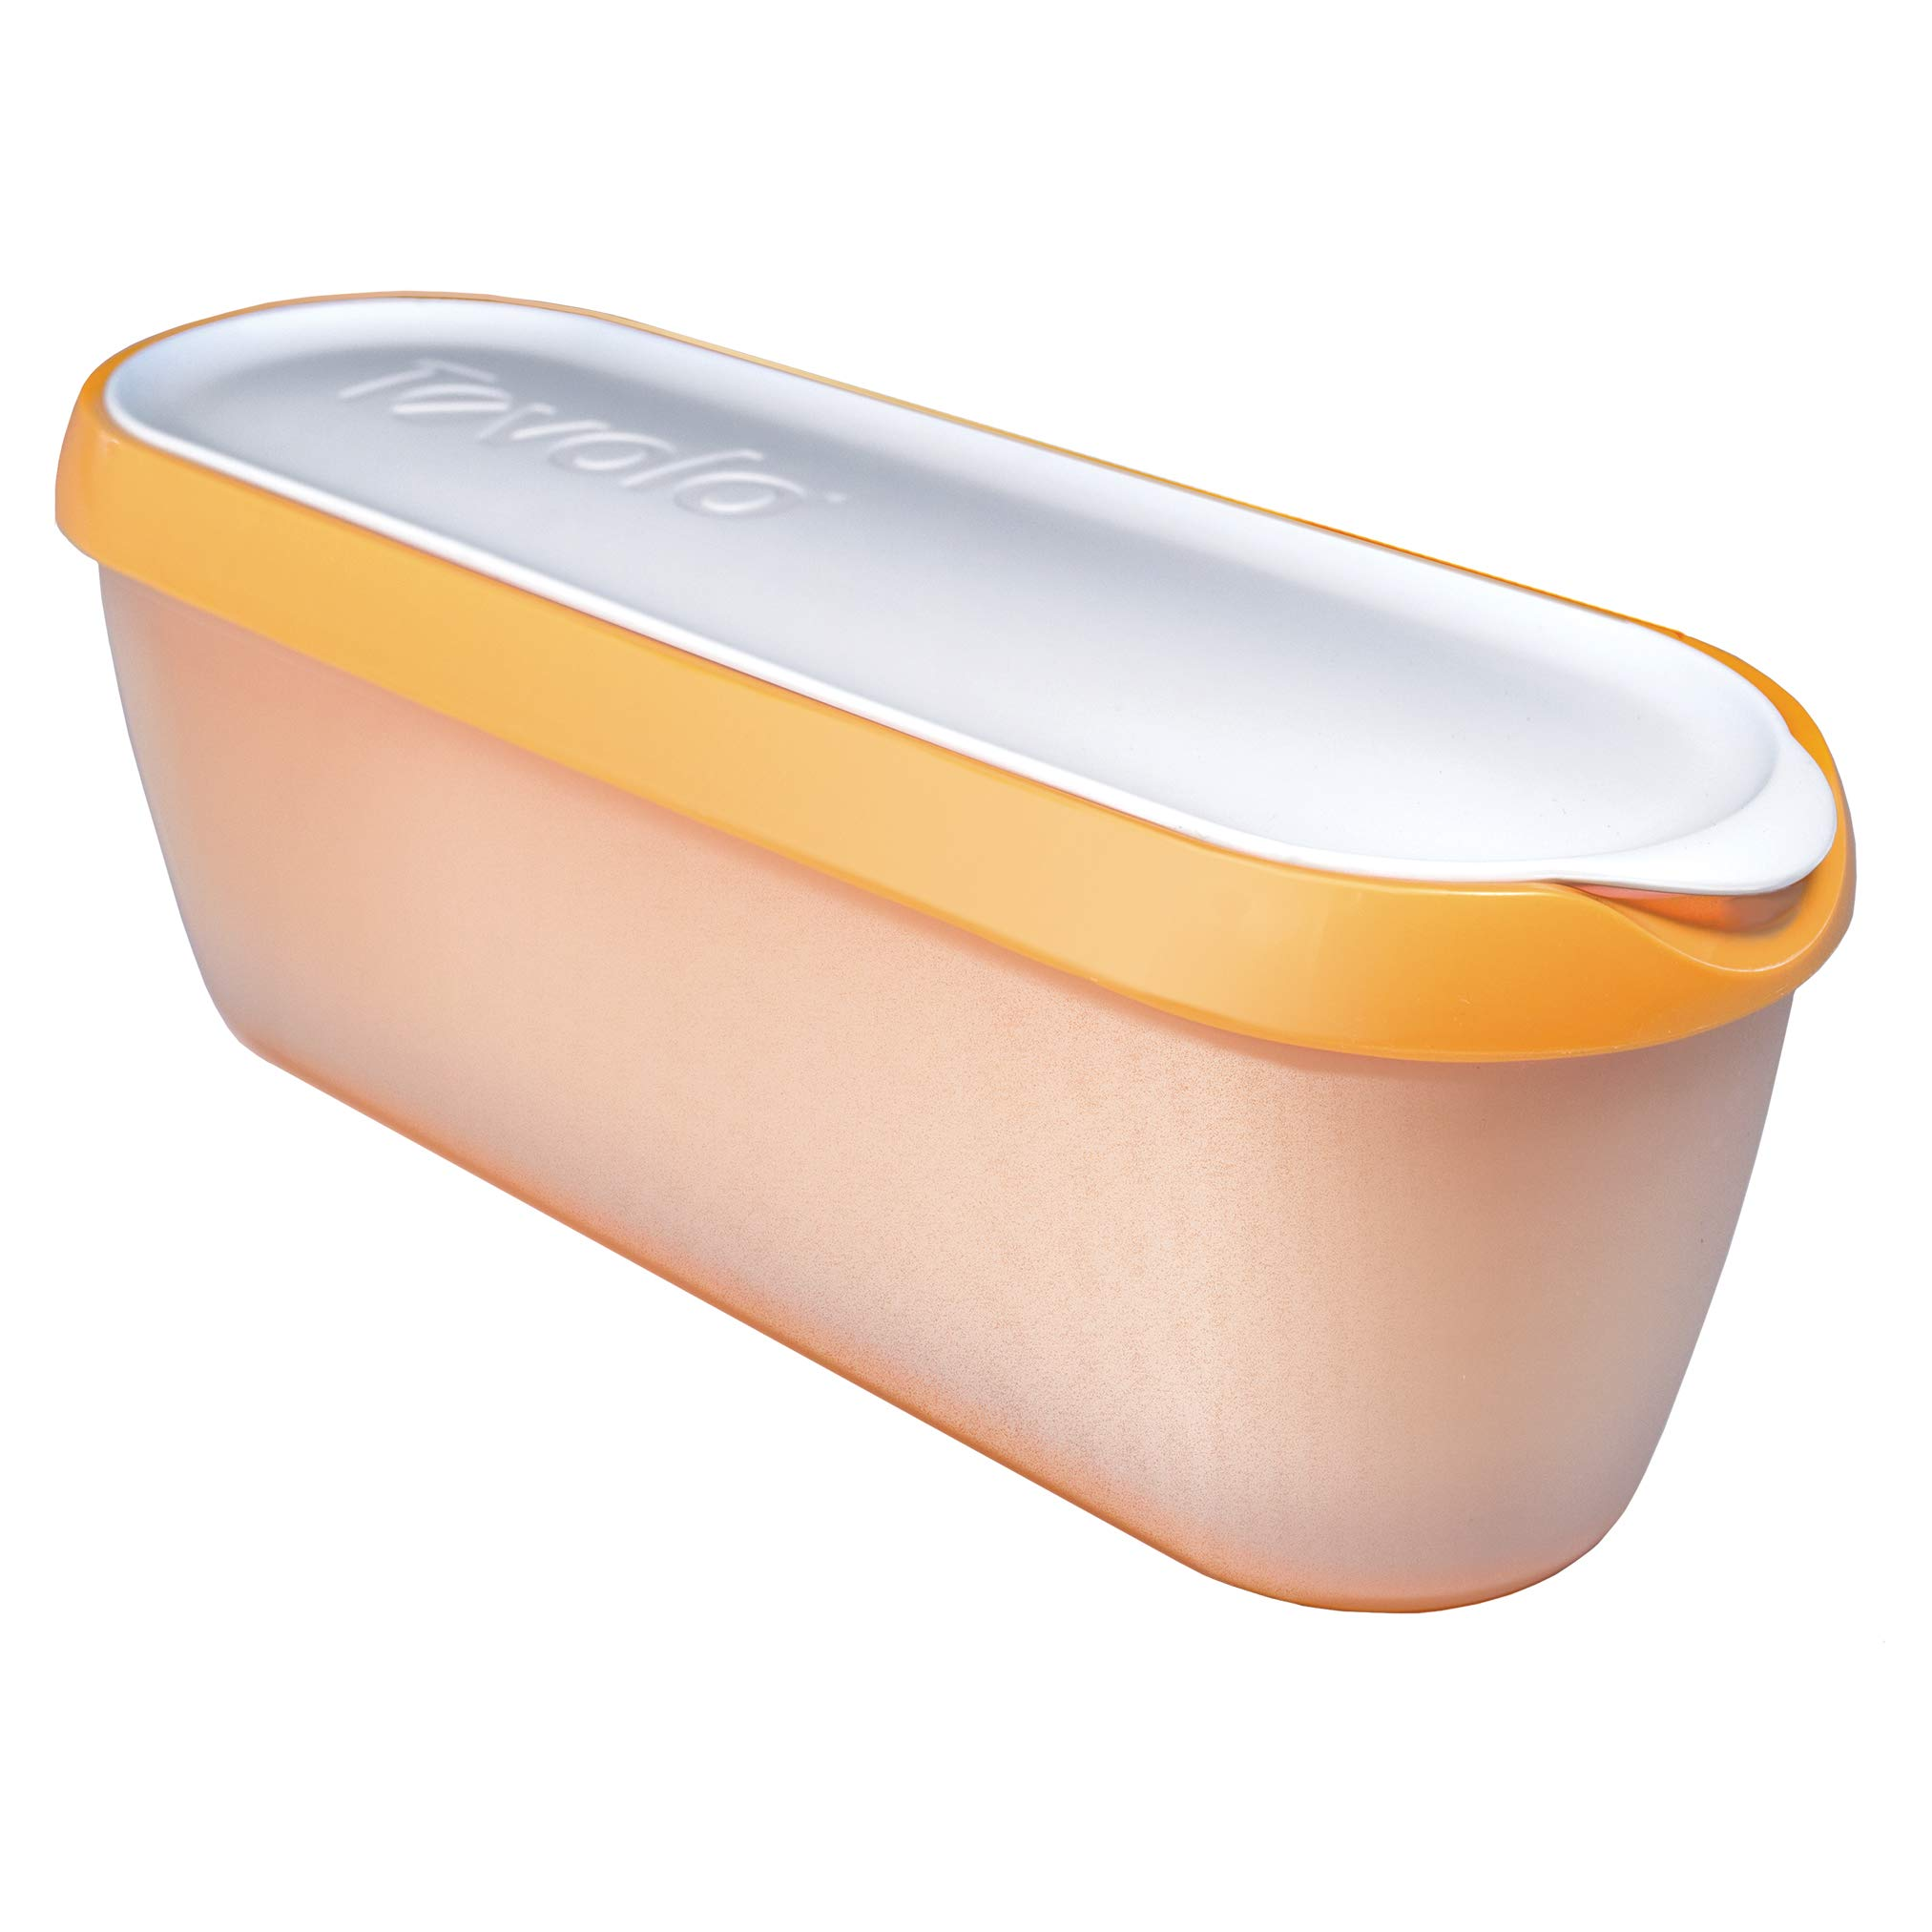 Tovolo Glide-A-Scoop Ice Cream Tub, 1.5 Quart, Insulated, Airtight Reusable Container With Non-Slip Base, Stackable on Freezer Shelves, BPA-Free, Orange Crush